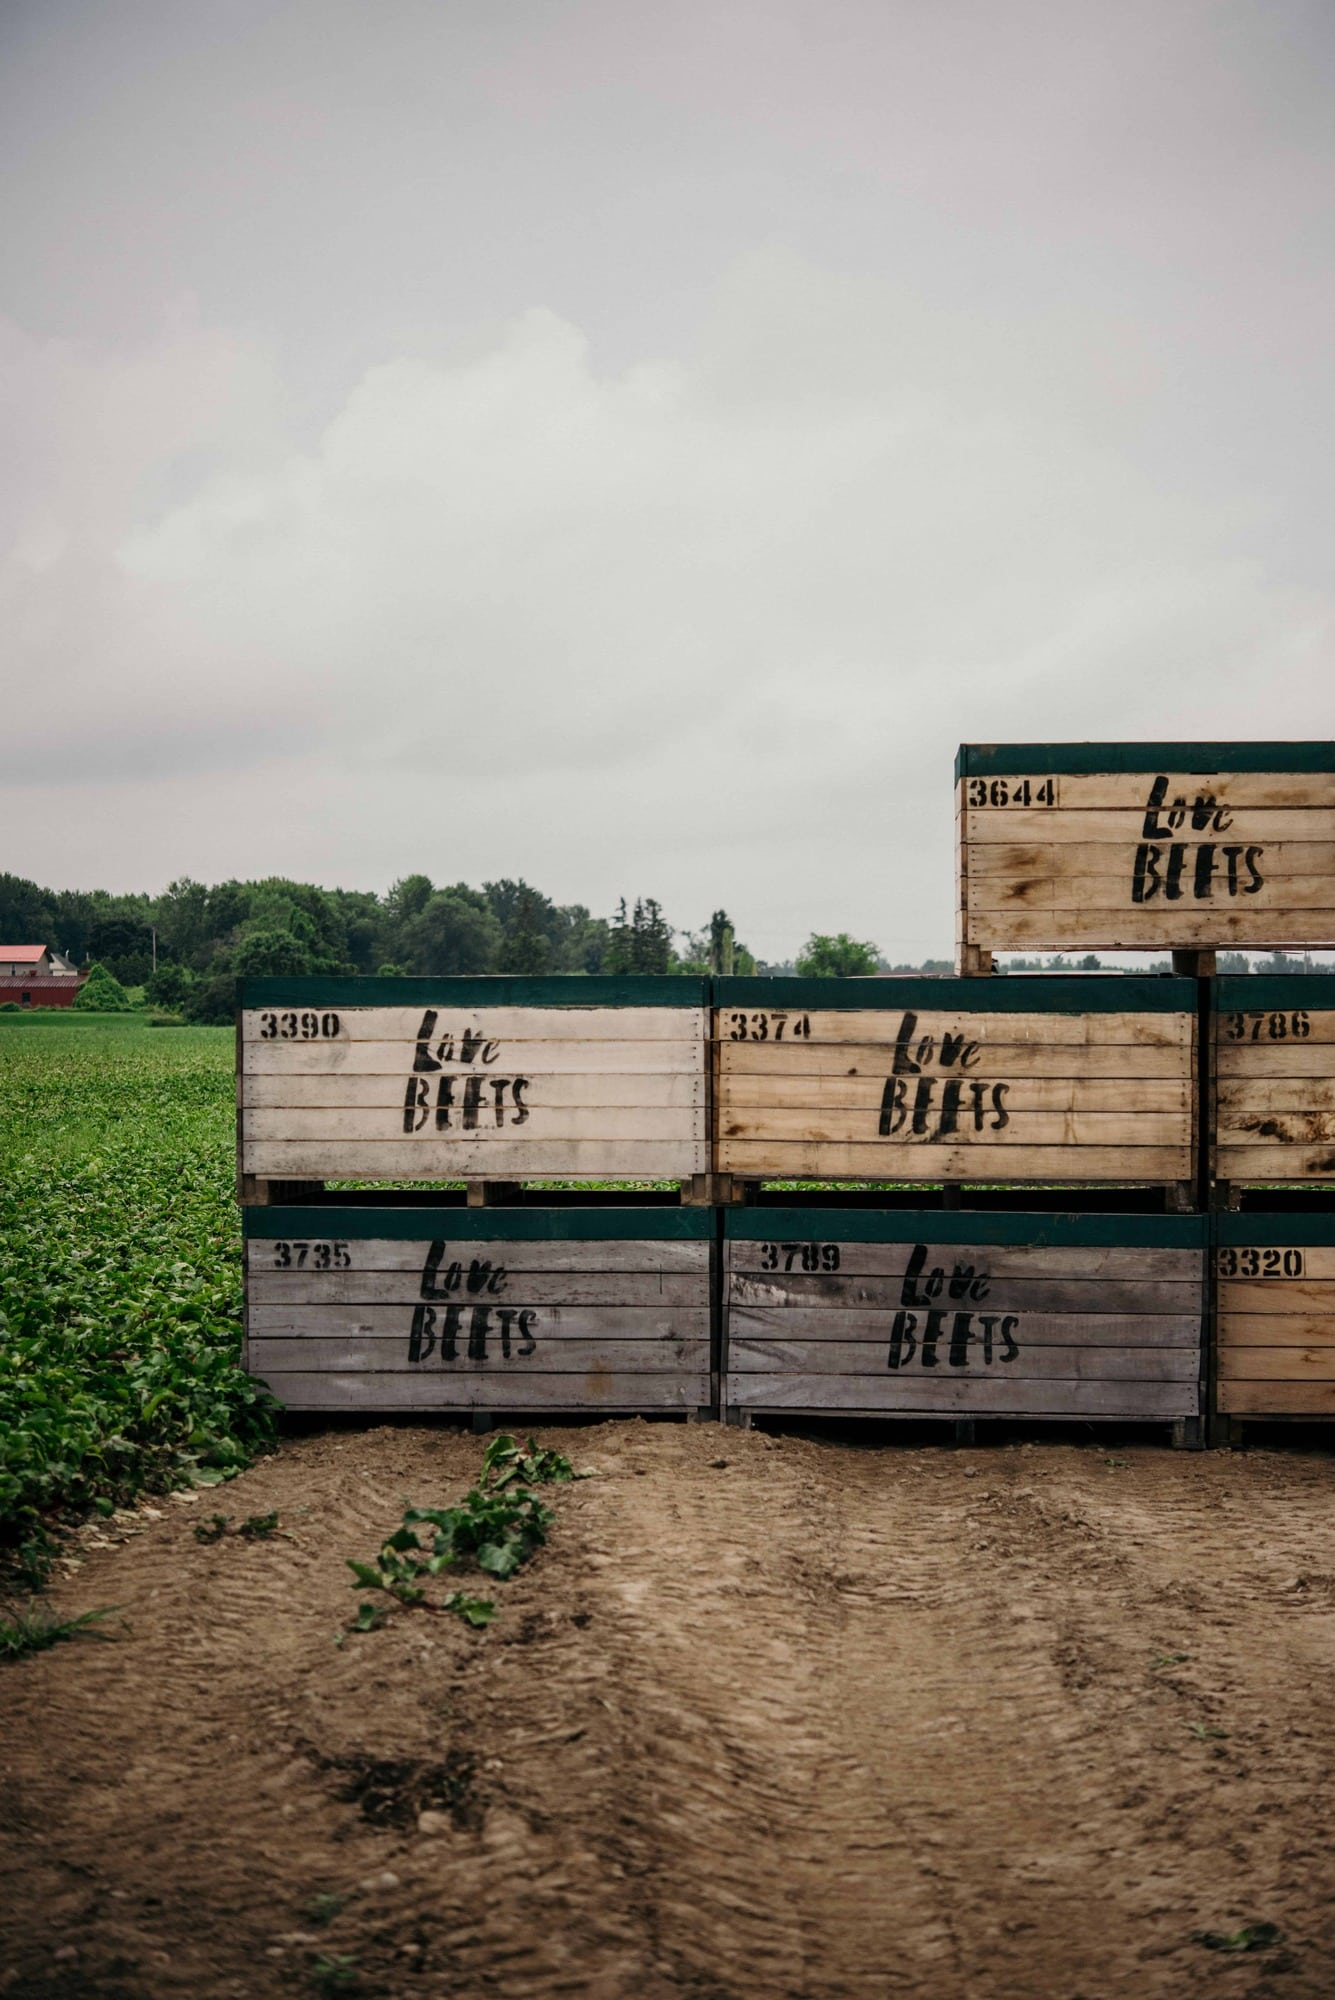 Love beets crates filled with beets at their farm in new york